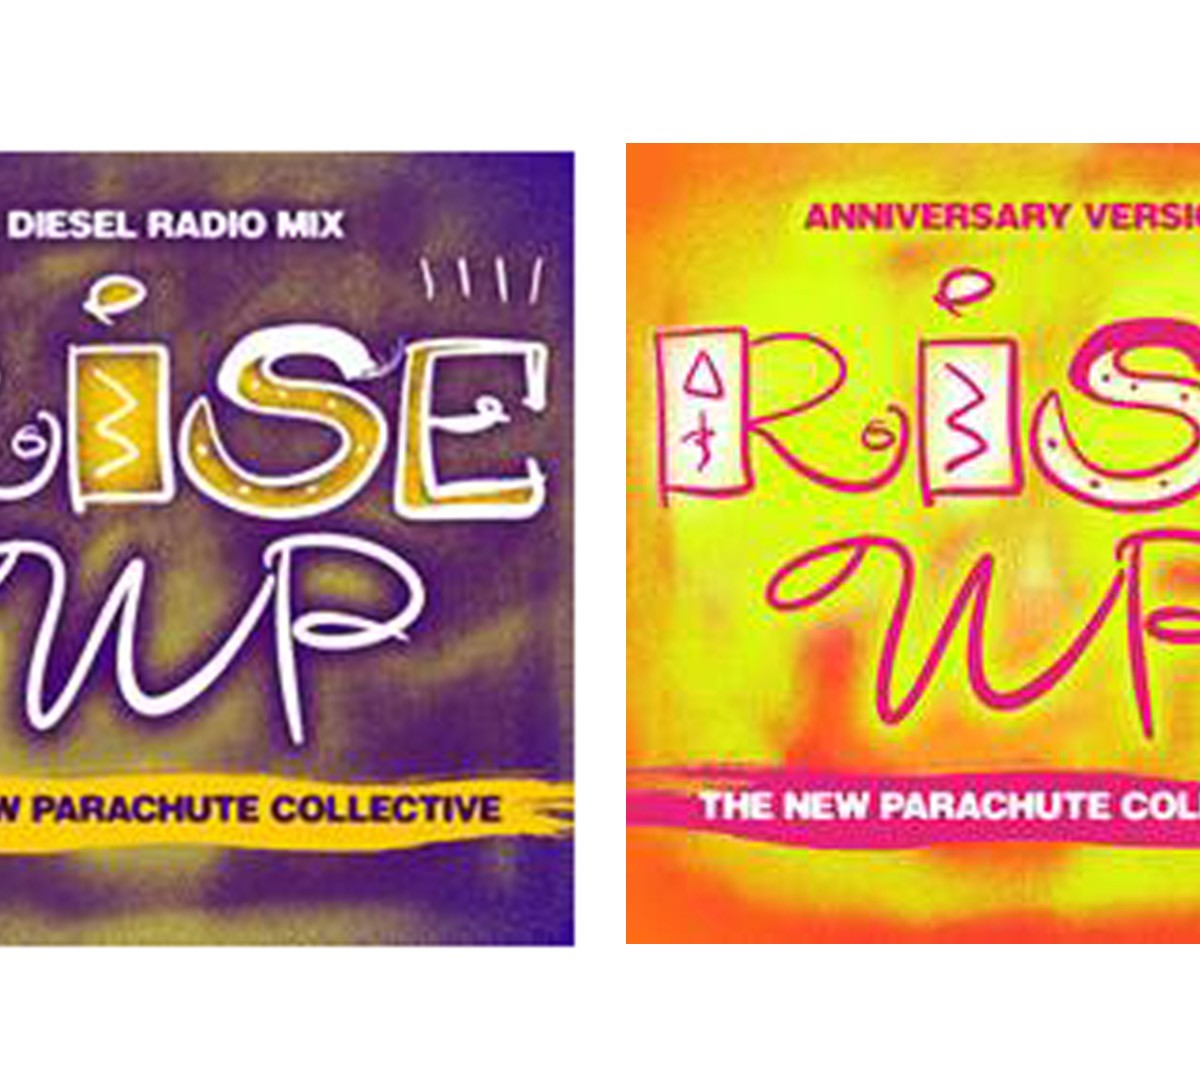 Rise Up – The New Parachute Collective Release